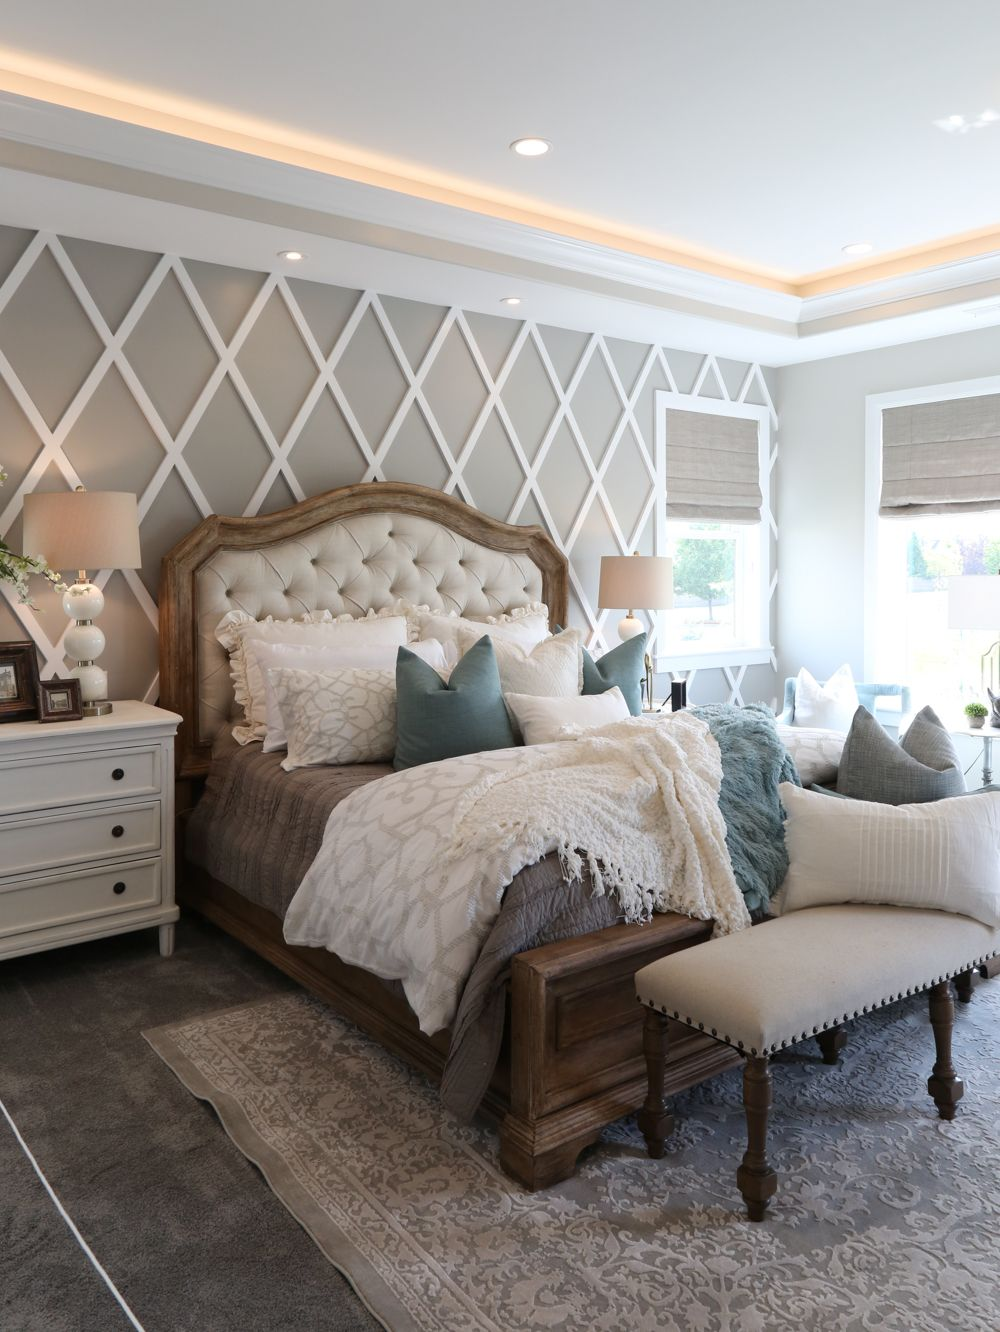 Modern French Country Home Tour Home Decor Bedroom Master Bedrooms Decor Country Bedroom Design